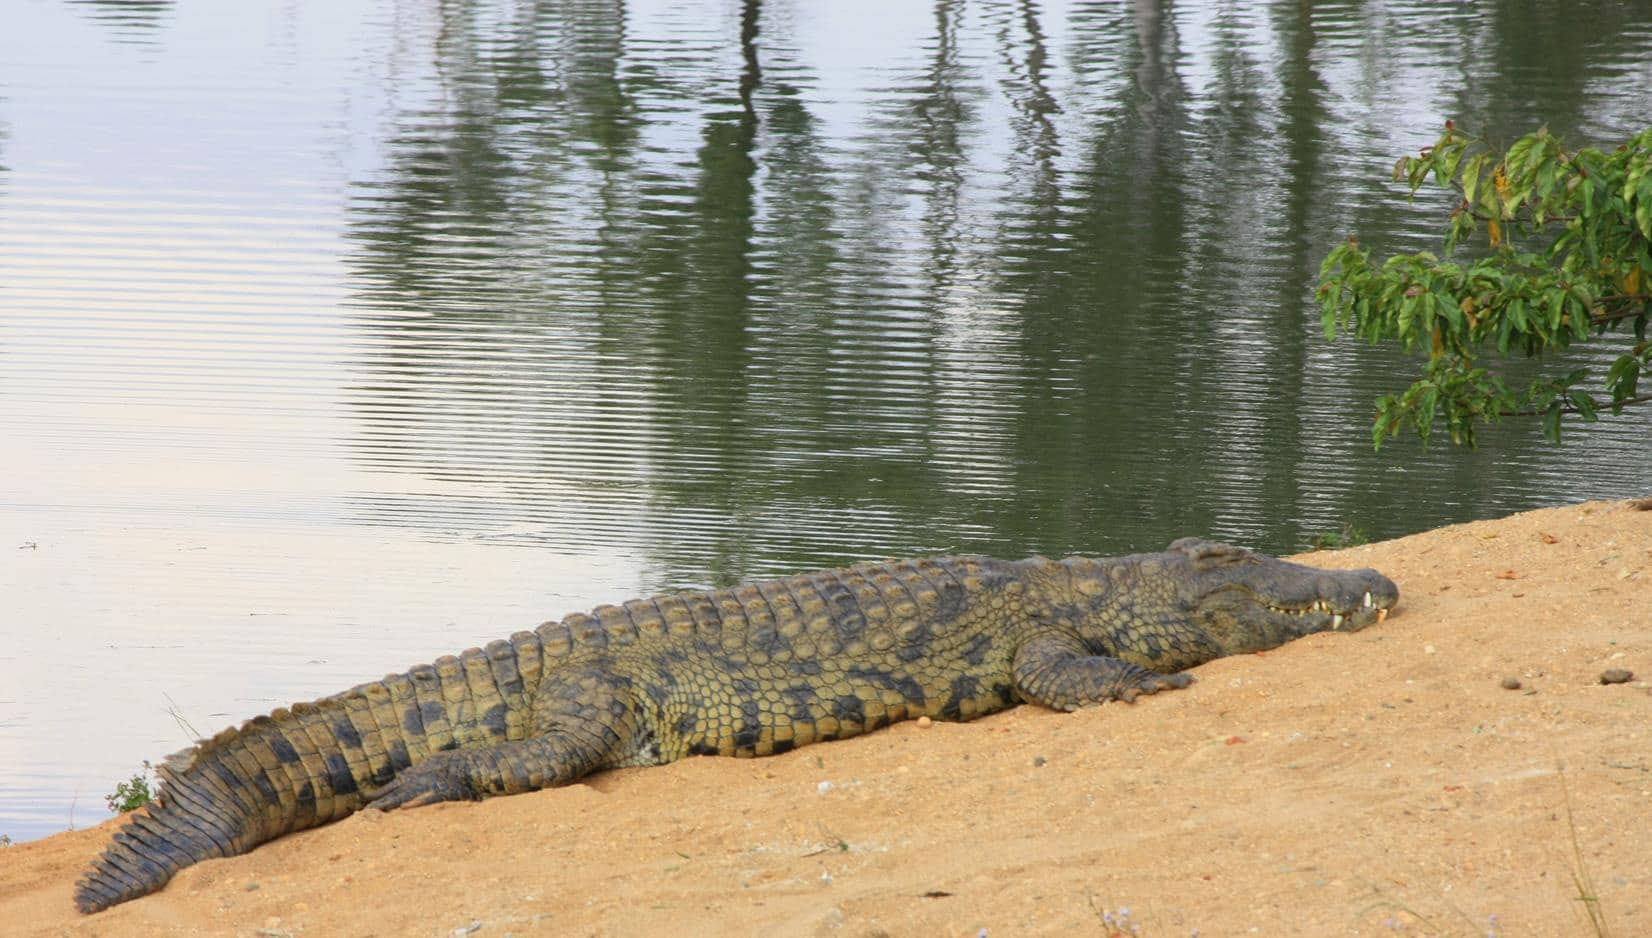 One of the resident crocodiles.